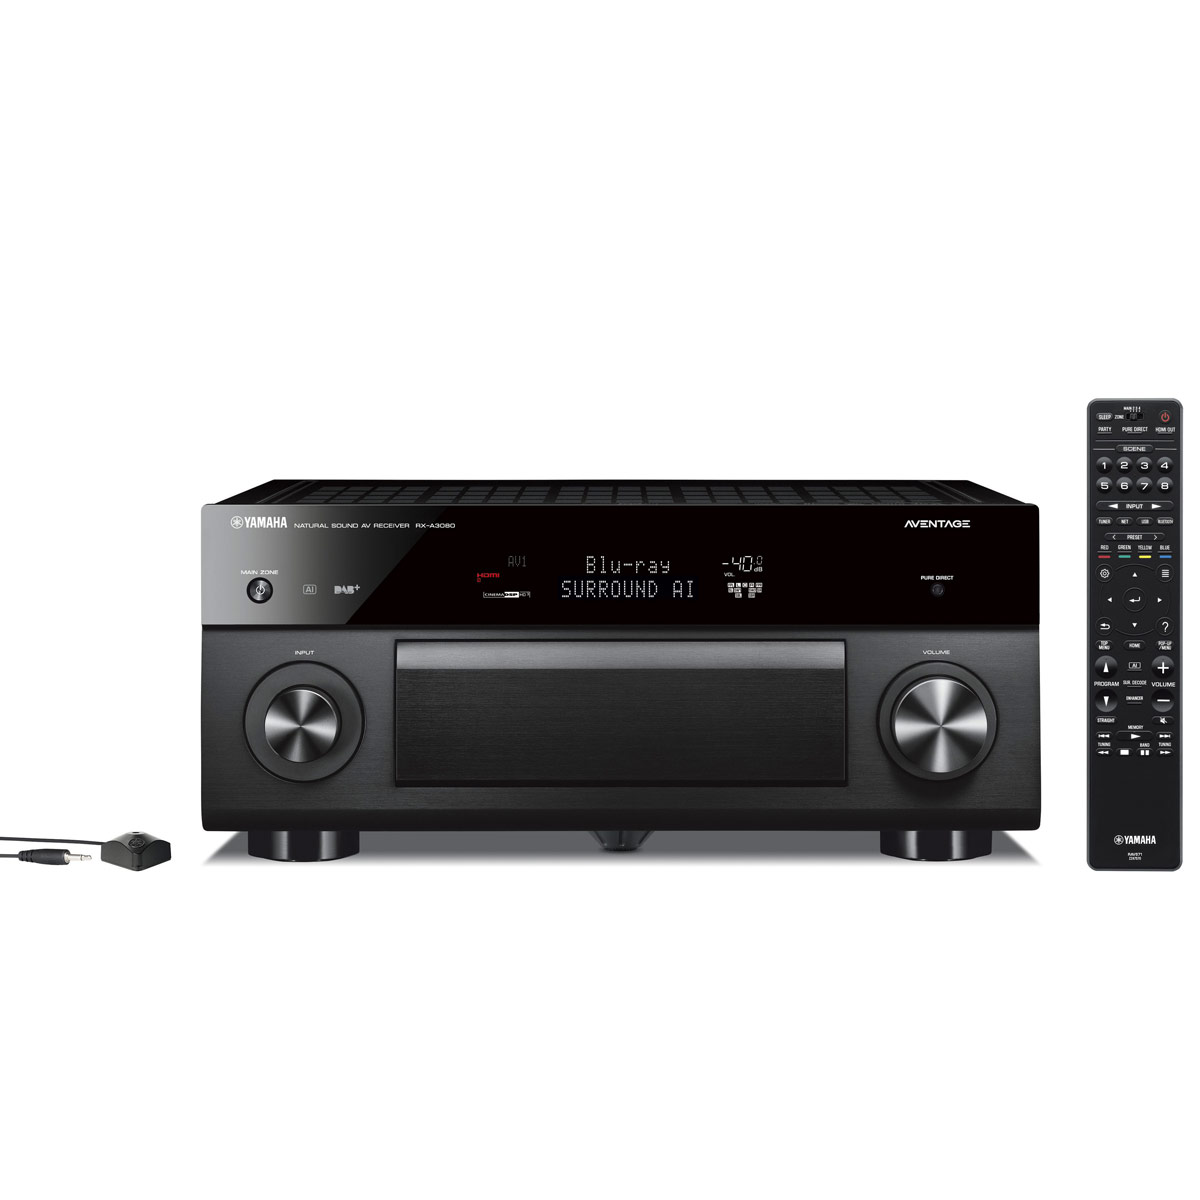 Ampli home cinéma Yamaha RX-A3080 Noir Ampli-tuner Home Cinéma 9.2 3D 150W/canal - Dolby Atmos/DTS:X - 7x HDMI HDCP 2.2 Ultra HD 4K - Wi-Fi/Bluetooth/DLNA/AirPlay - MusicCast/MusicCast Surround - A.R.T. Wedge - Calibration YPAO RSC